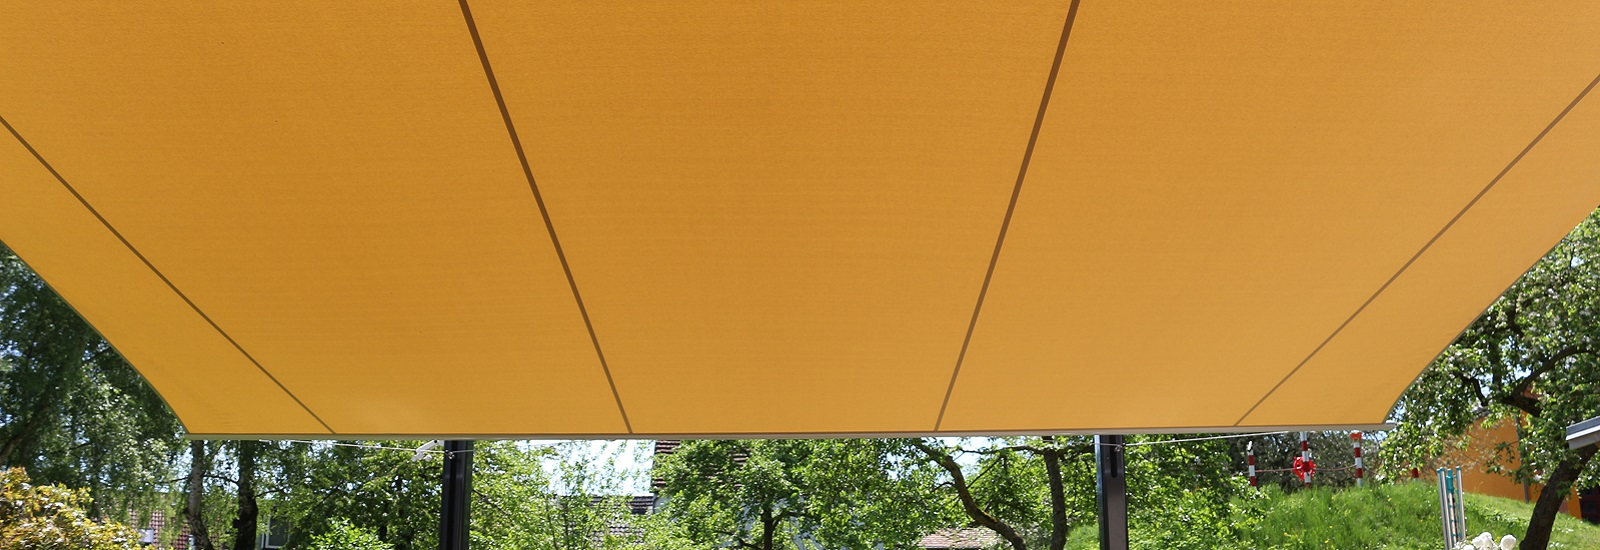 Sunshield Shade Sail System